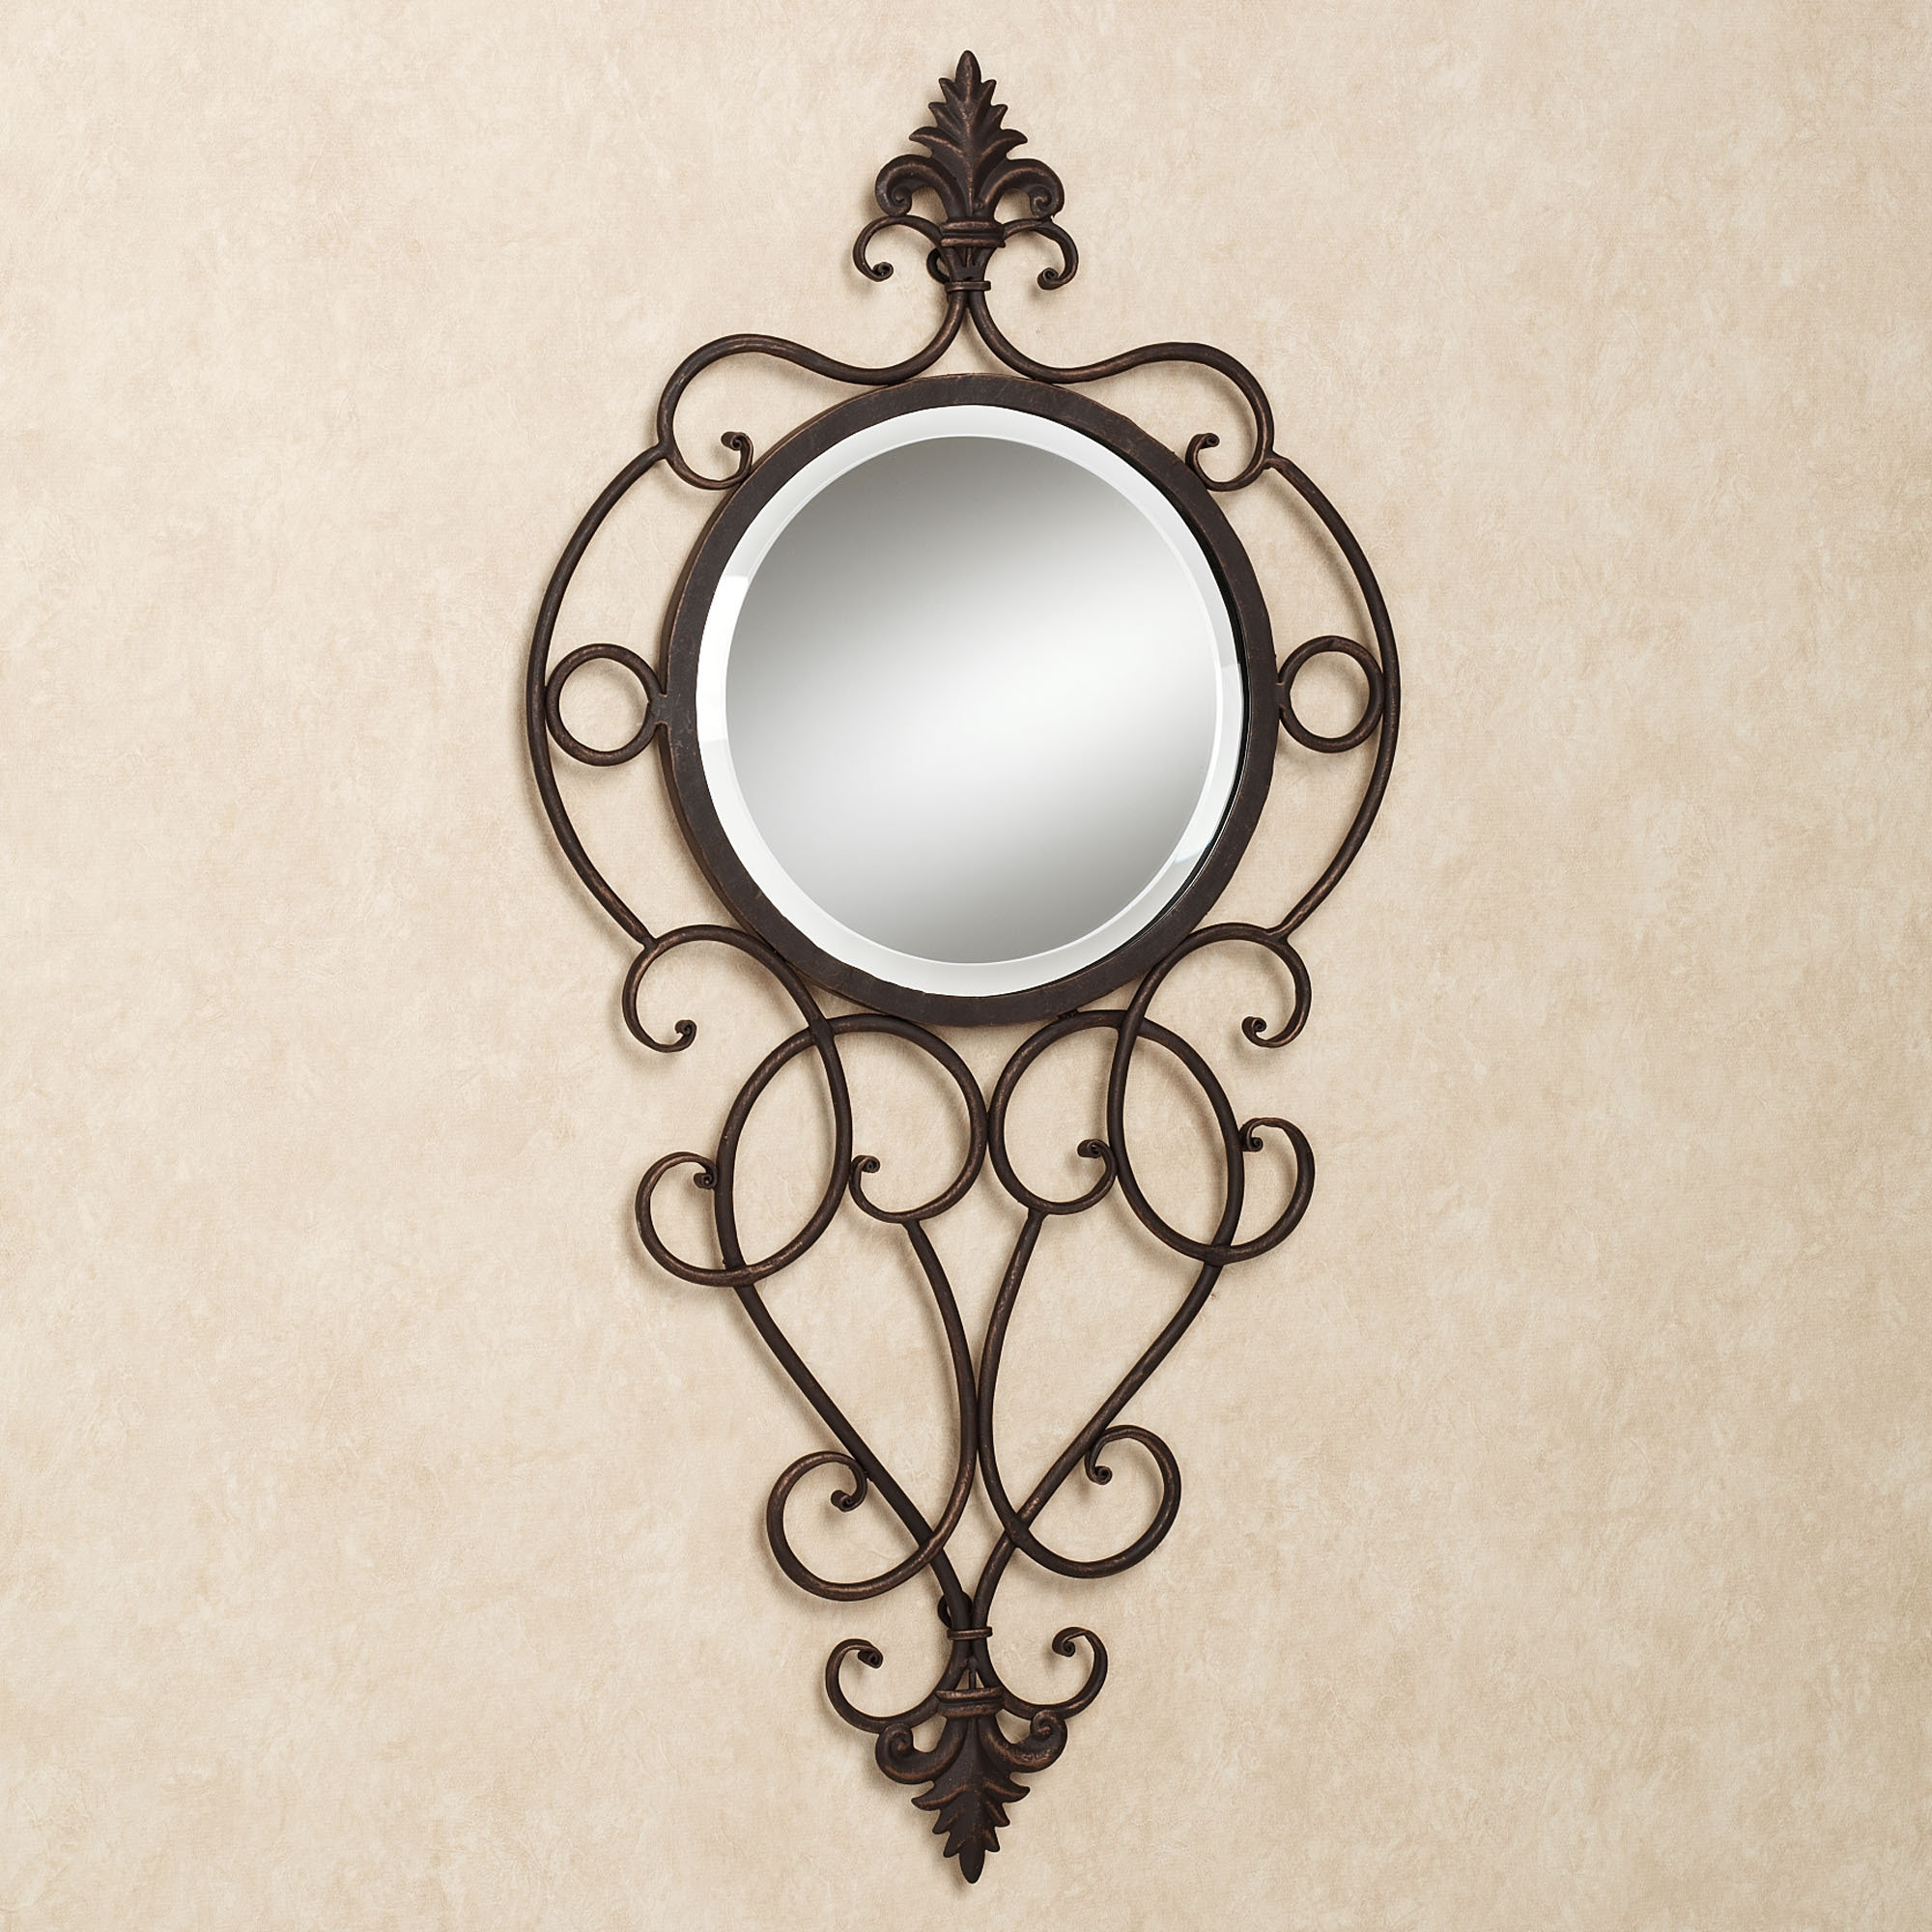 Antique Wrought Iron Wall Mirror Antique Wrought Iron Wall Mirror vintage wrought iron wall decor home decoration benefit of 2000 X 2000